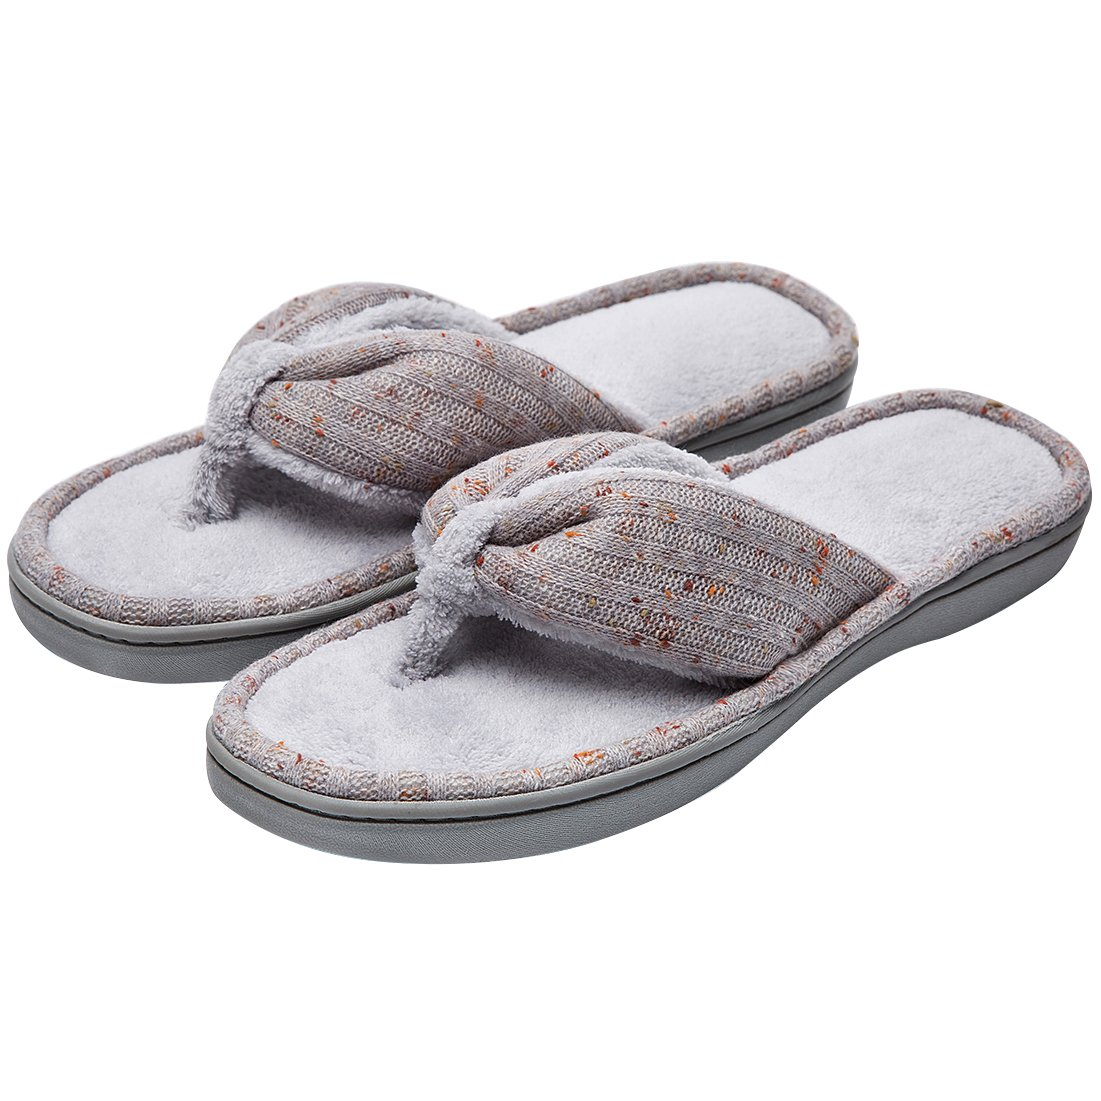 Women's Soft Comfy Knitted Plush Fleece Lining Memory Foam Spa Thong Flip Flops House Slippers